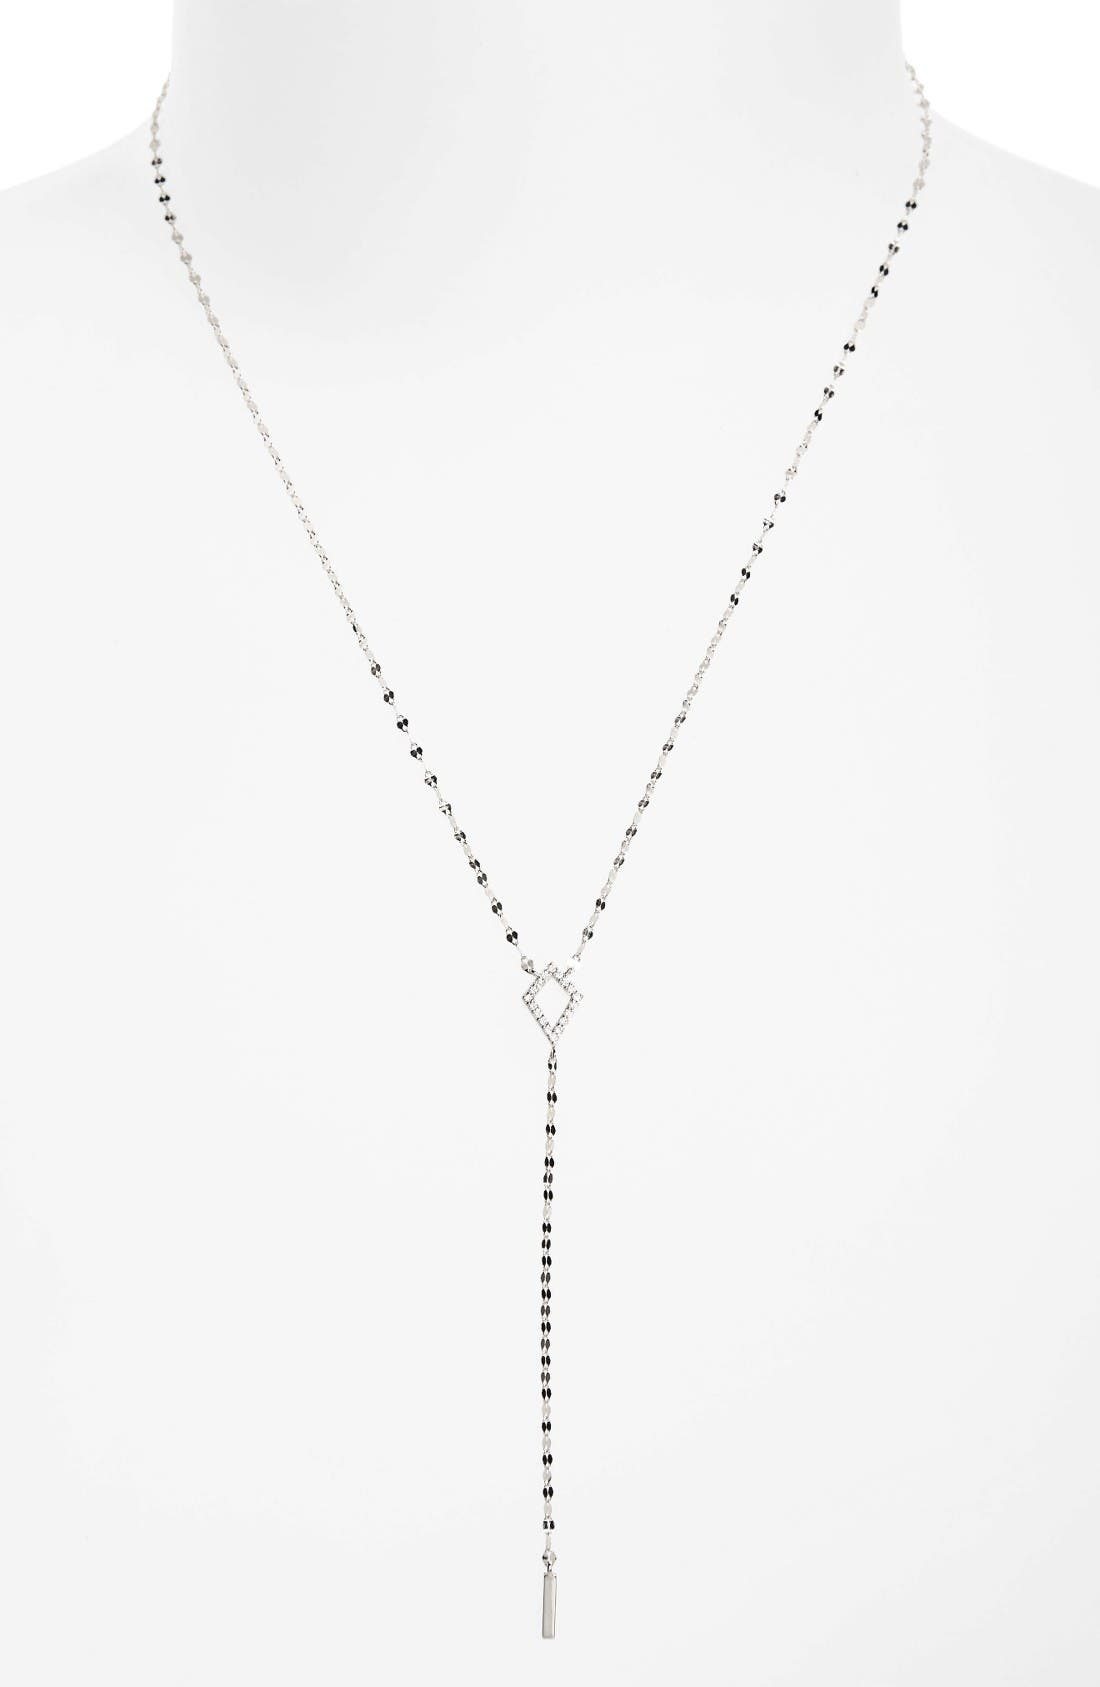 Flawless Diamond Kite Y-Necklace,                         Main,                         color, White Gold